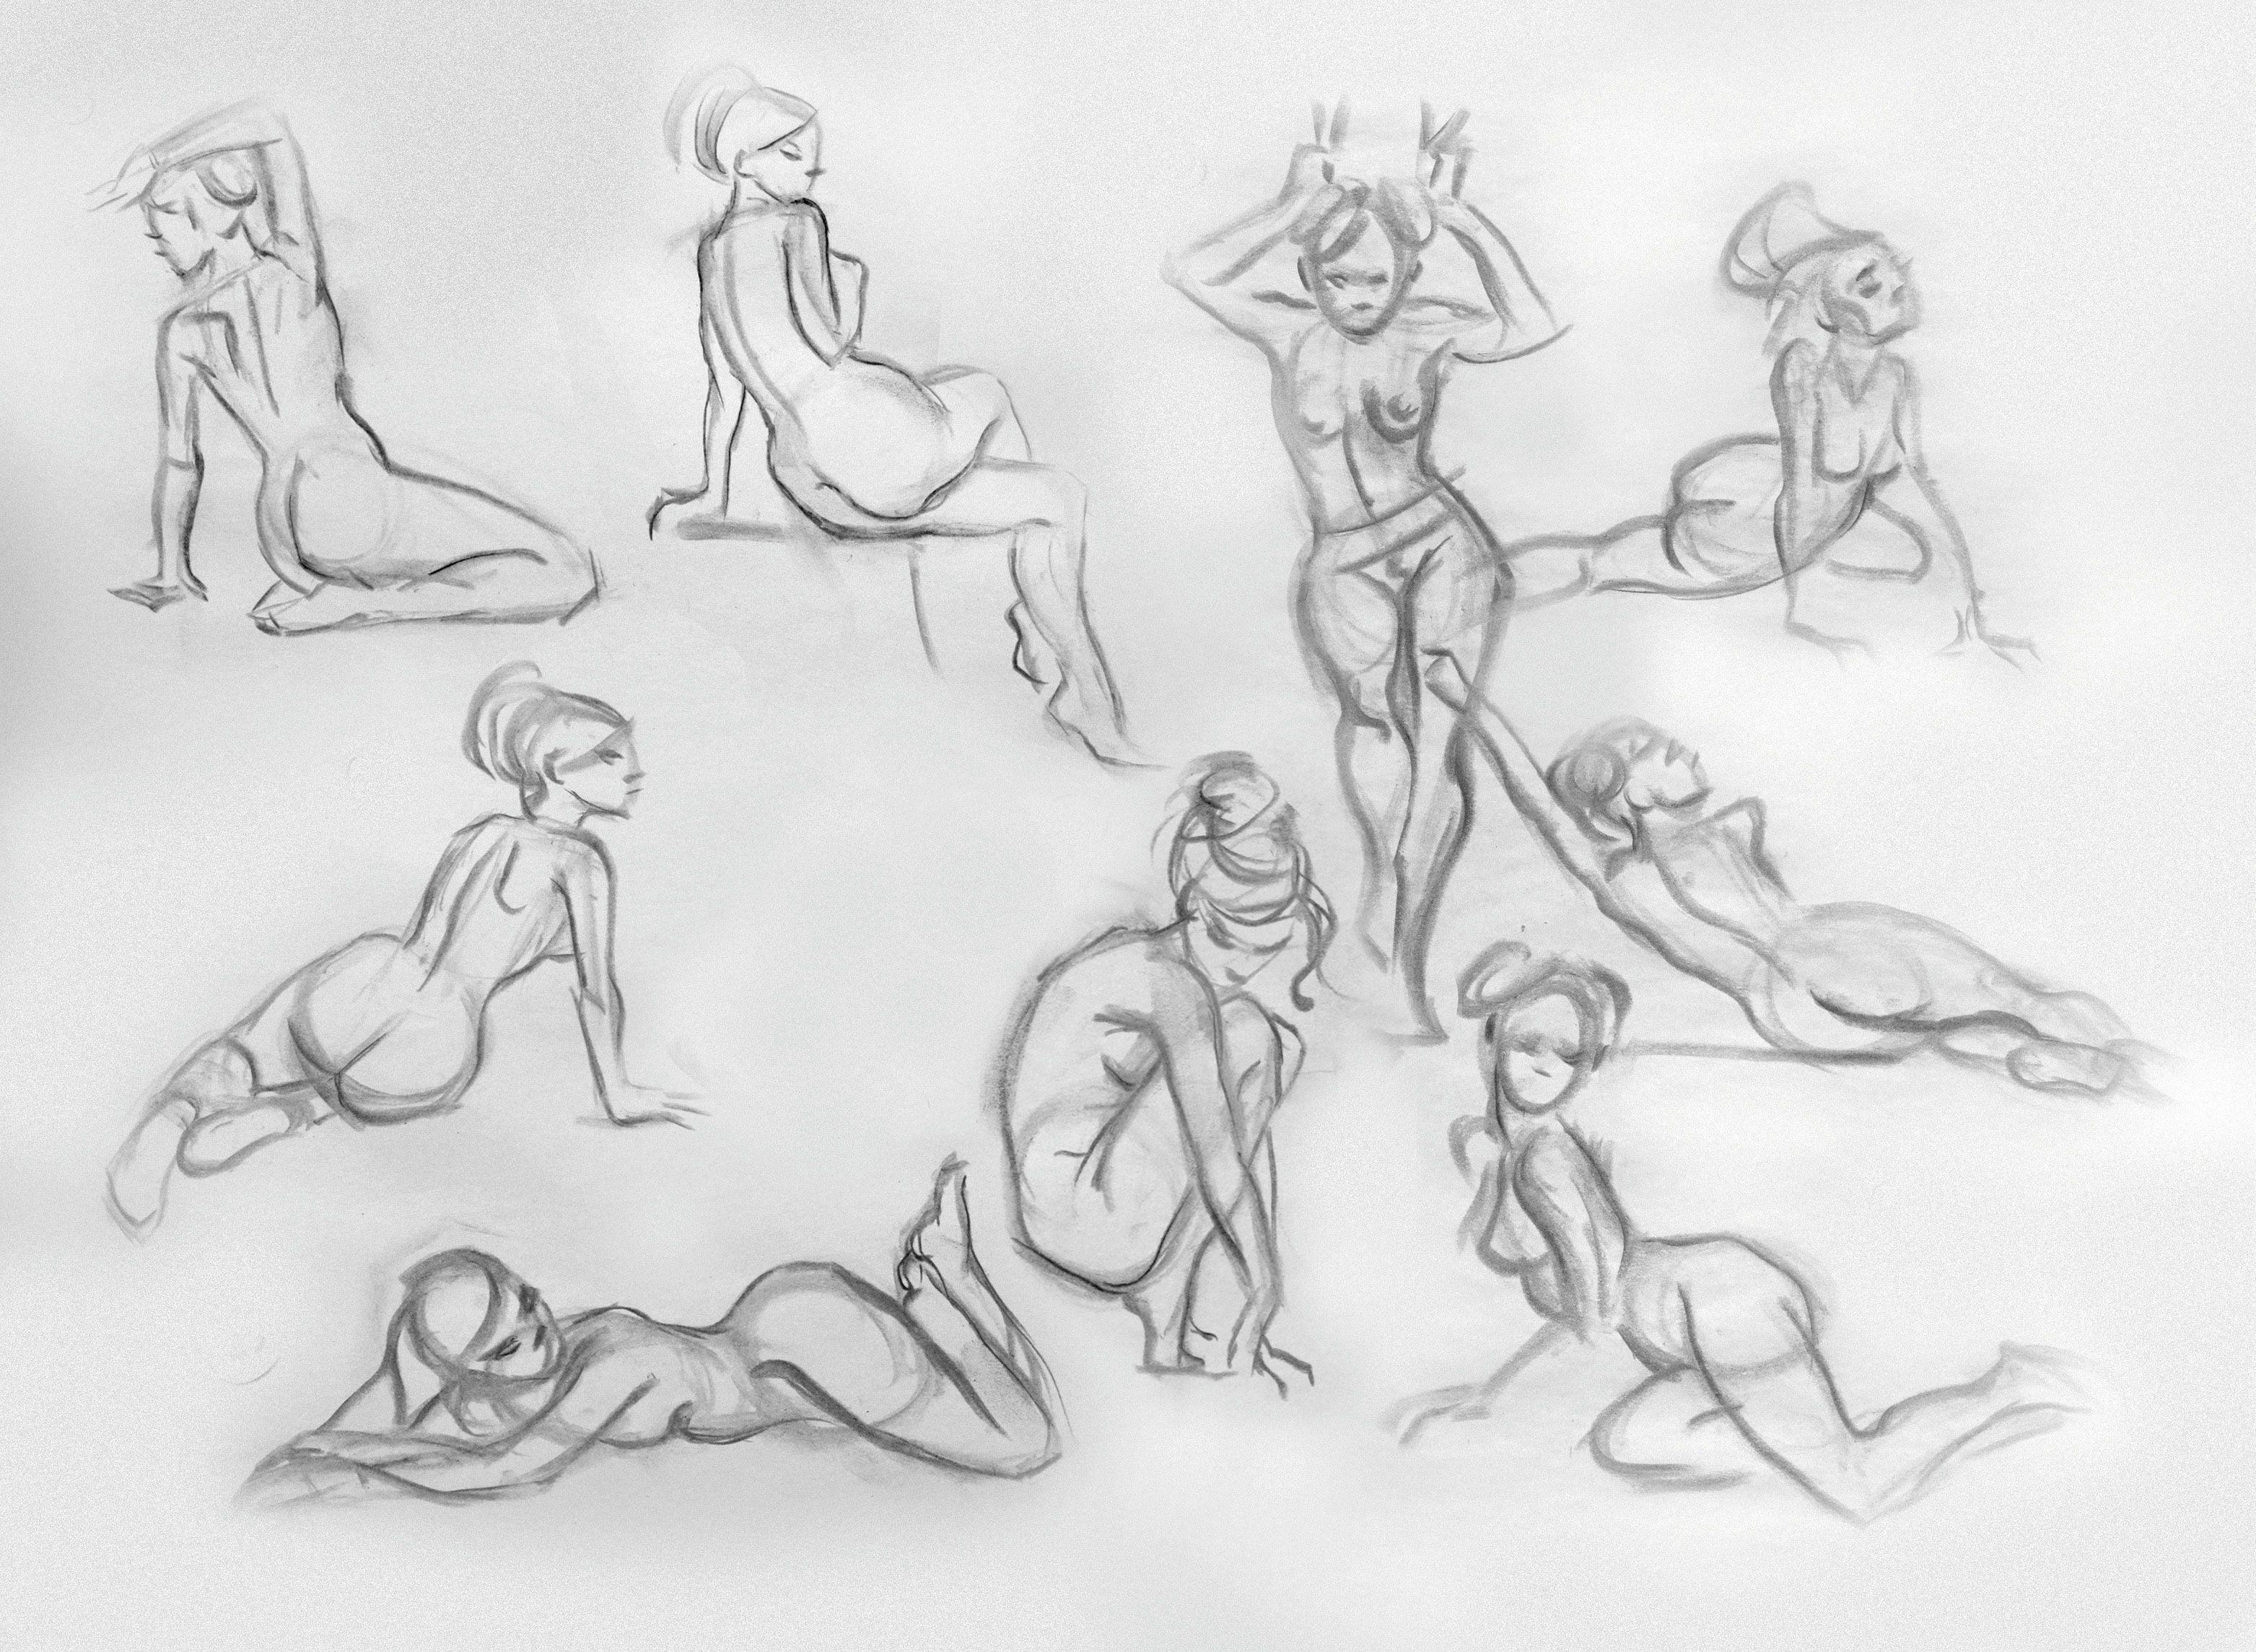 8abfcfb626d7f74f36ef3a2359da5405 How to draw poses better (male and female poses for beginners)